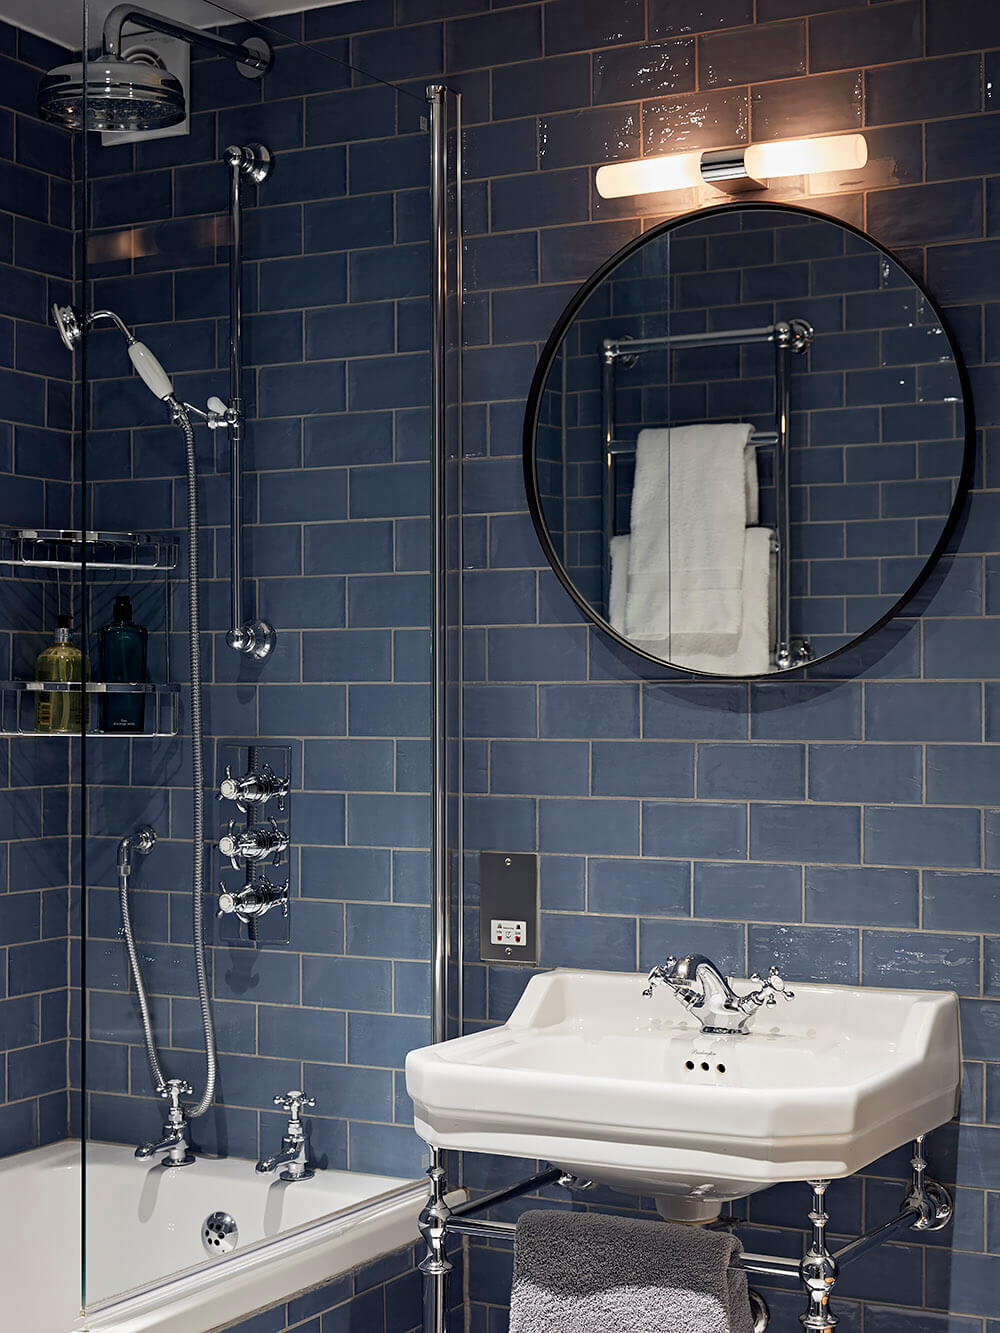 Kensington - W10 - Bathroom - Blue Tiles